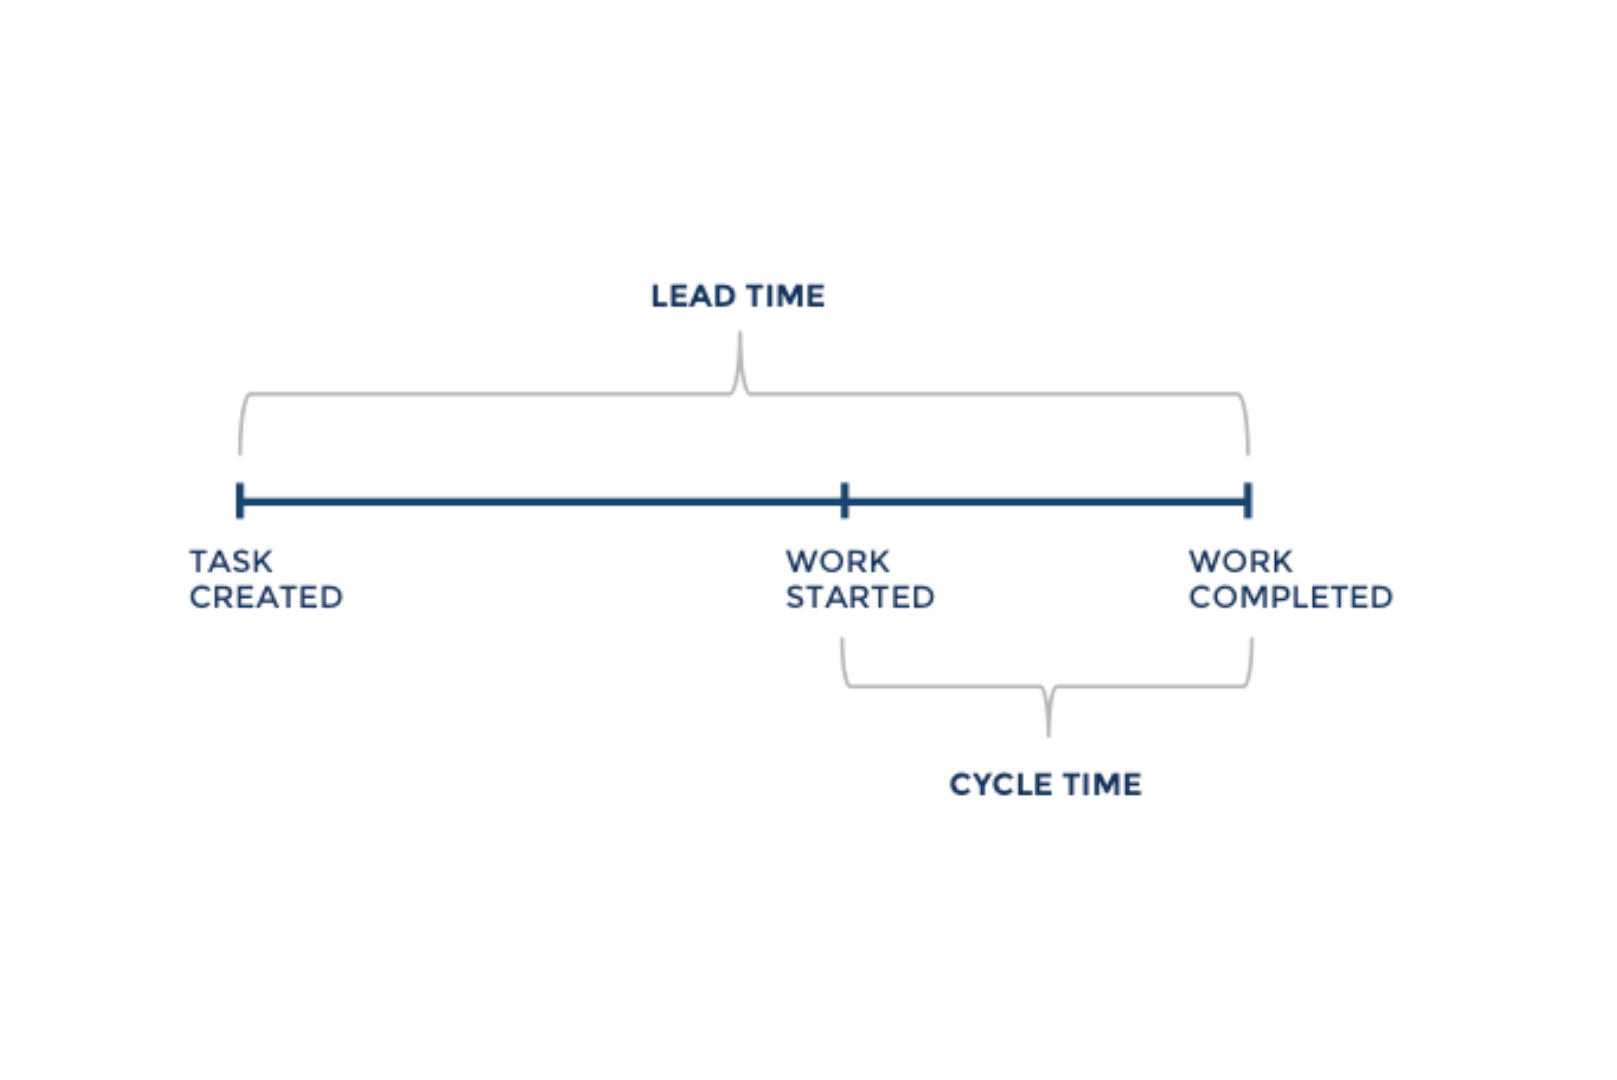 software development team Cycle Time